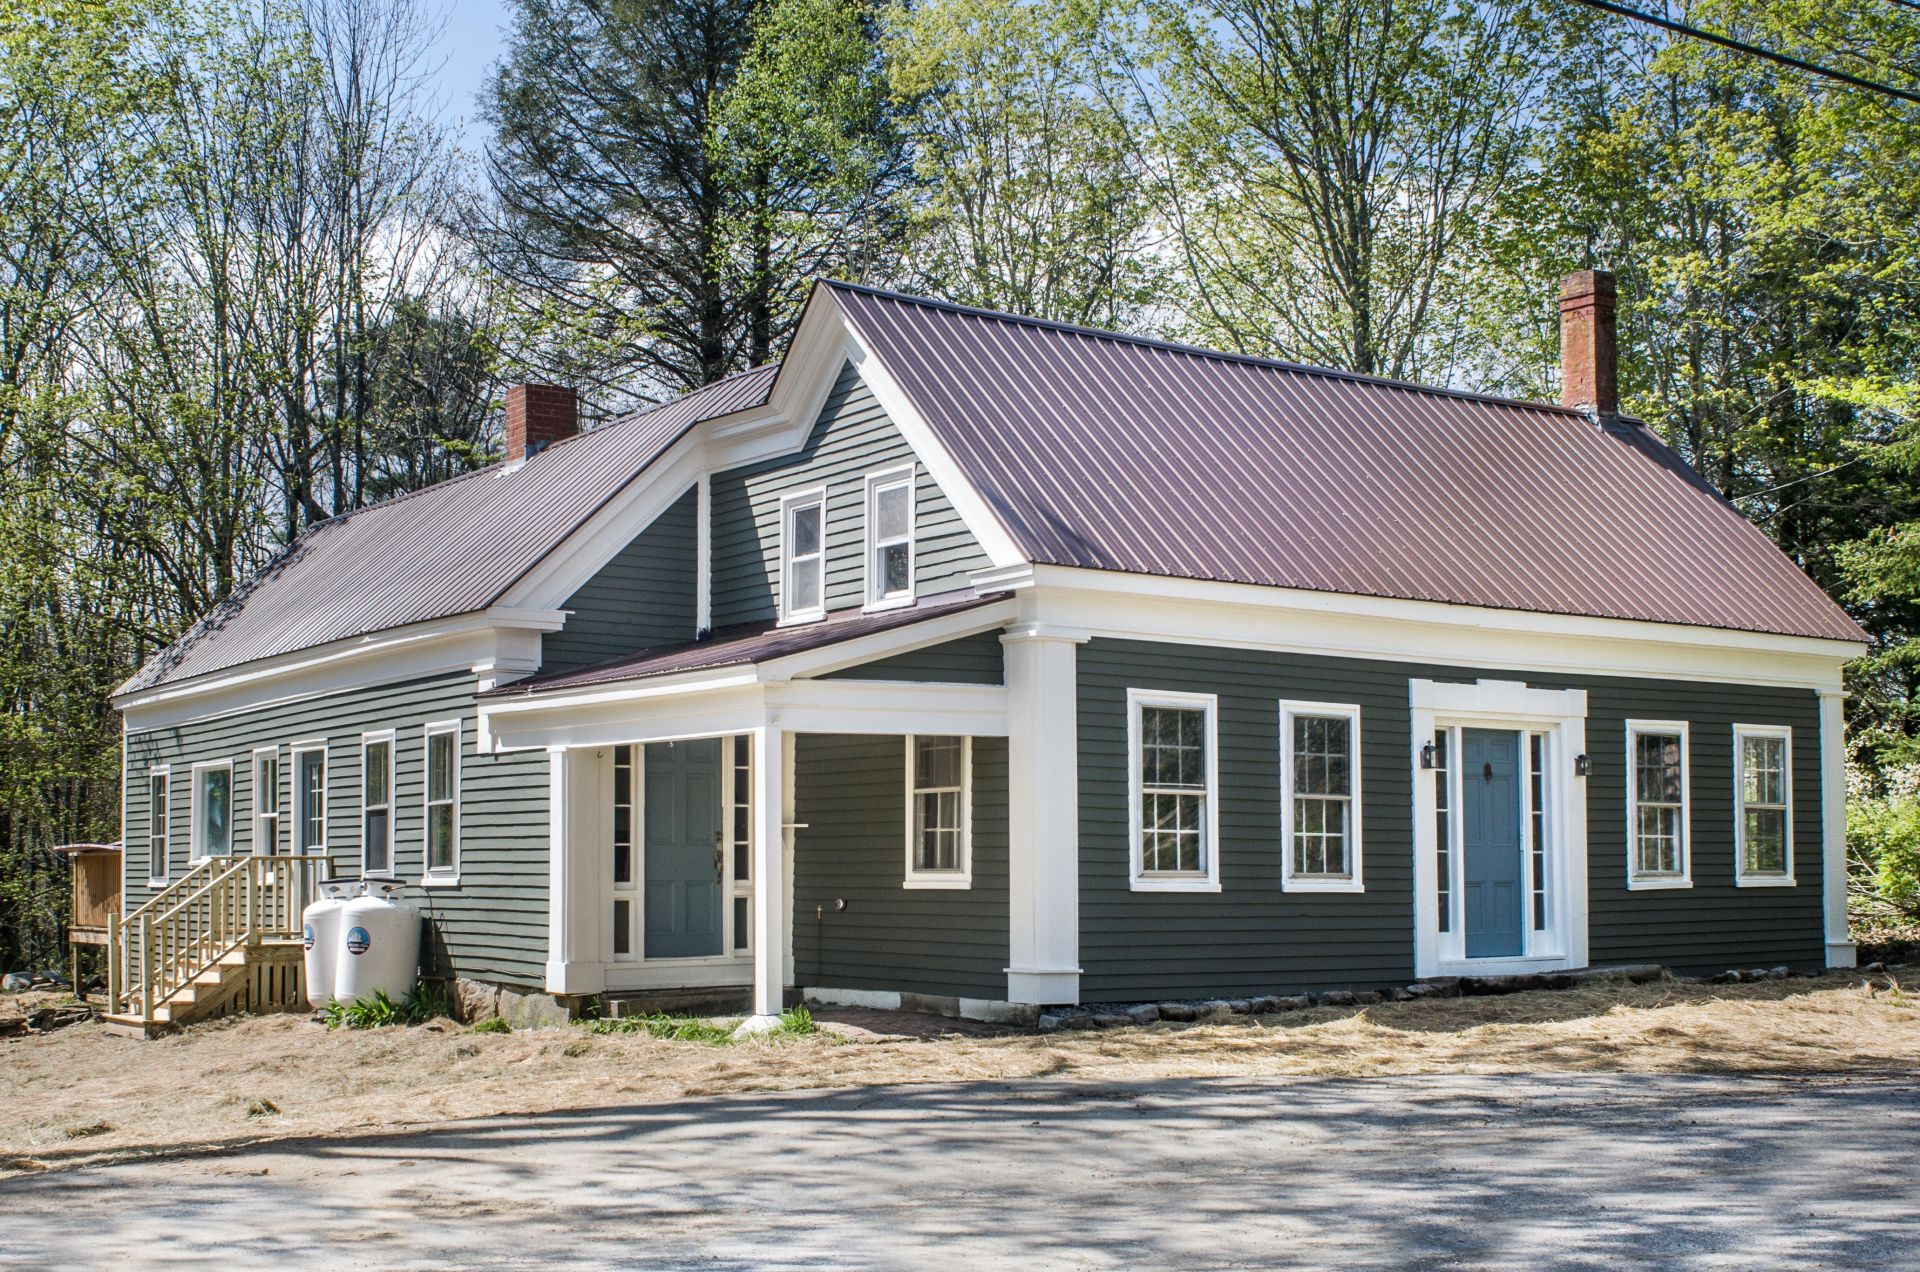 JUST LISTED – 48 Coombs Road, Brunswick, ME